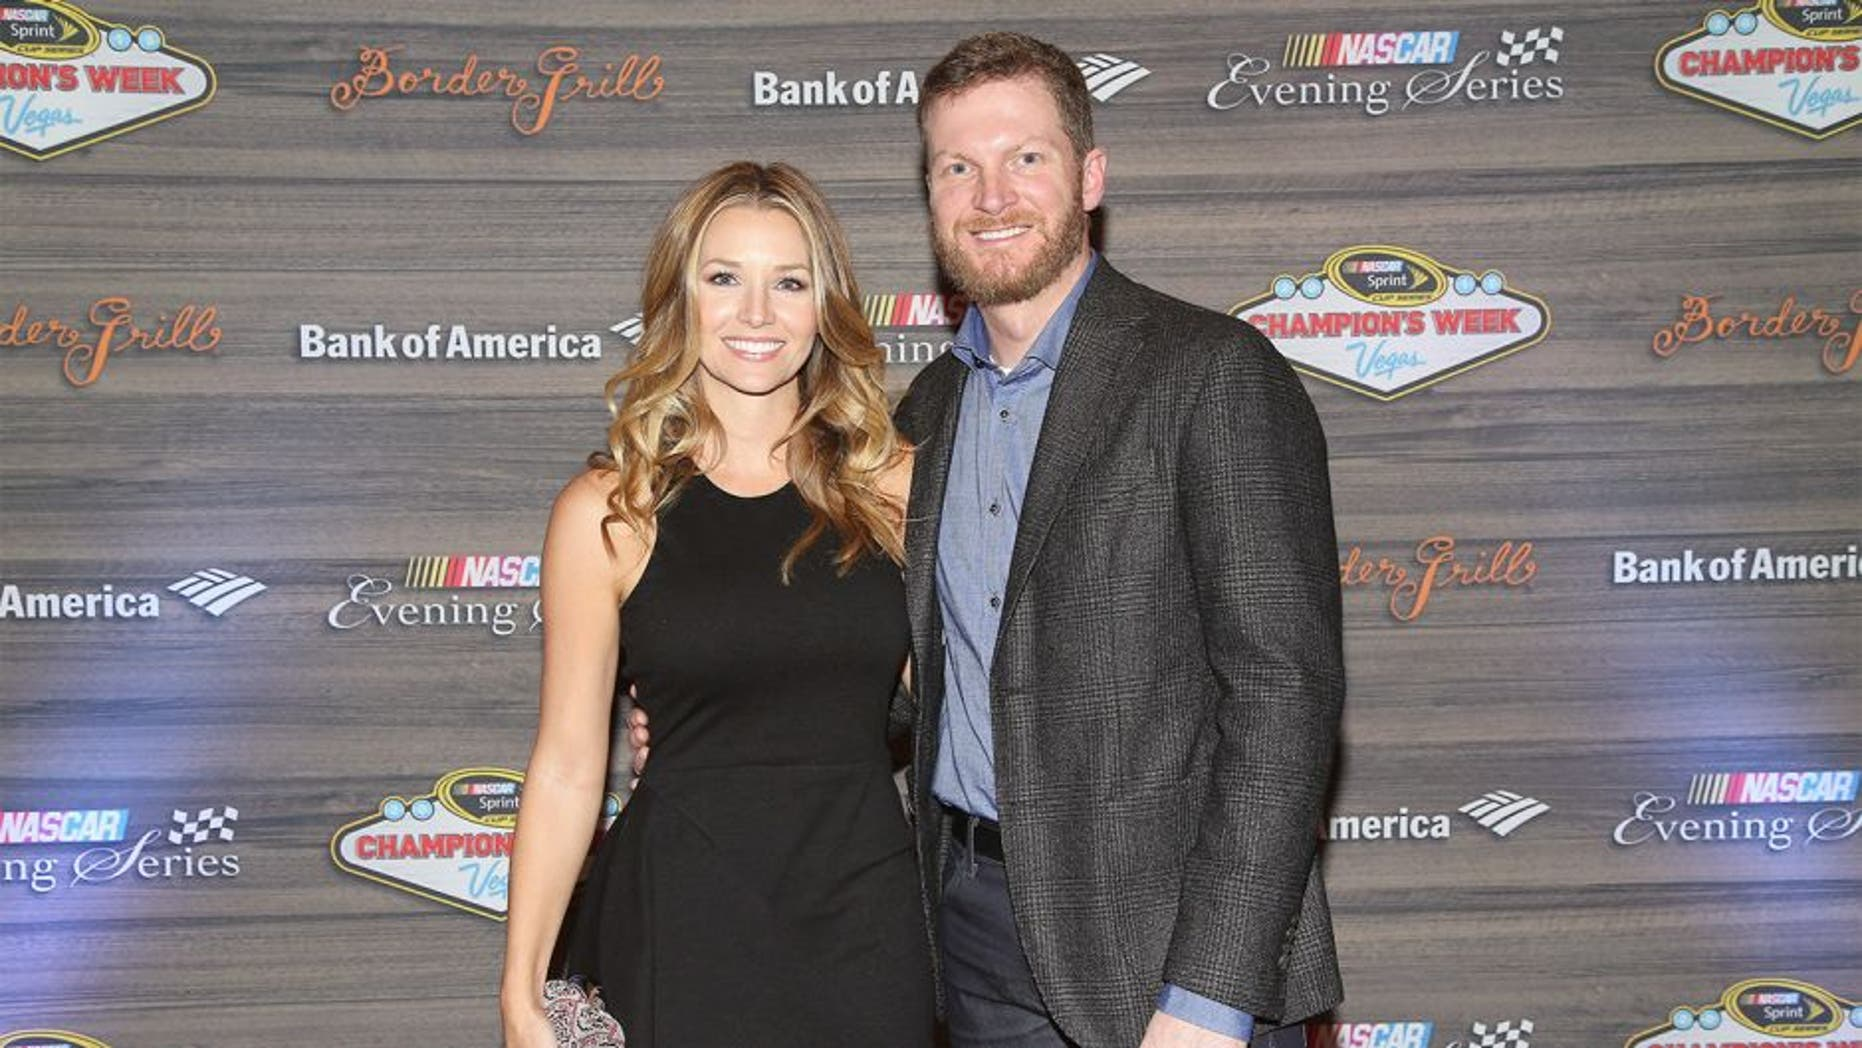 LAS VEGAS, NV - DECEMBER 02: NASCAR Sprint Cup Series driver Dale Earnhardt Jr. and fiancee Amy Reimann attend the NASCAR Evening Series presented by Bank of America at Border Grill inside Caesars Palace on December 2, 2015 in Las Vegas, Nevada. (Photo by Sean Gardner/NASCAR via Getty Images)